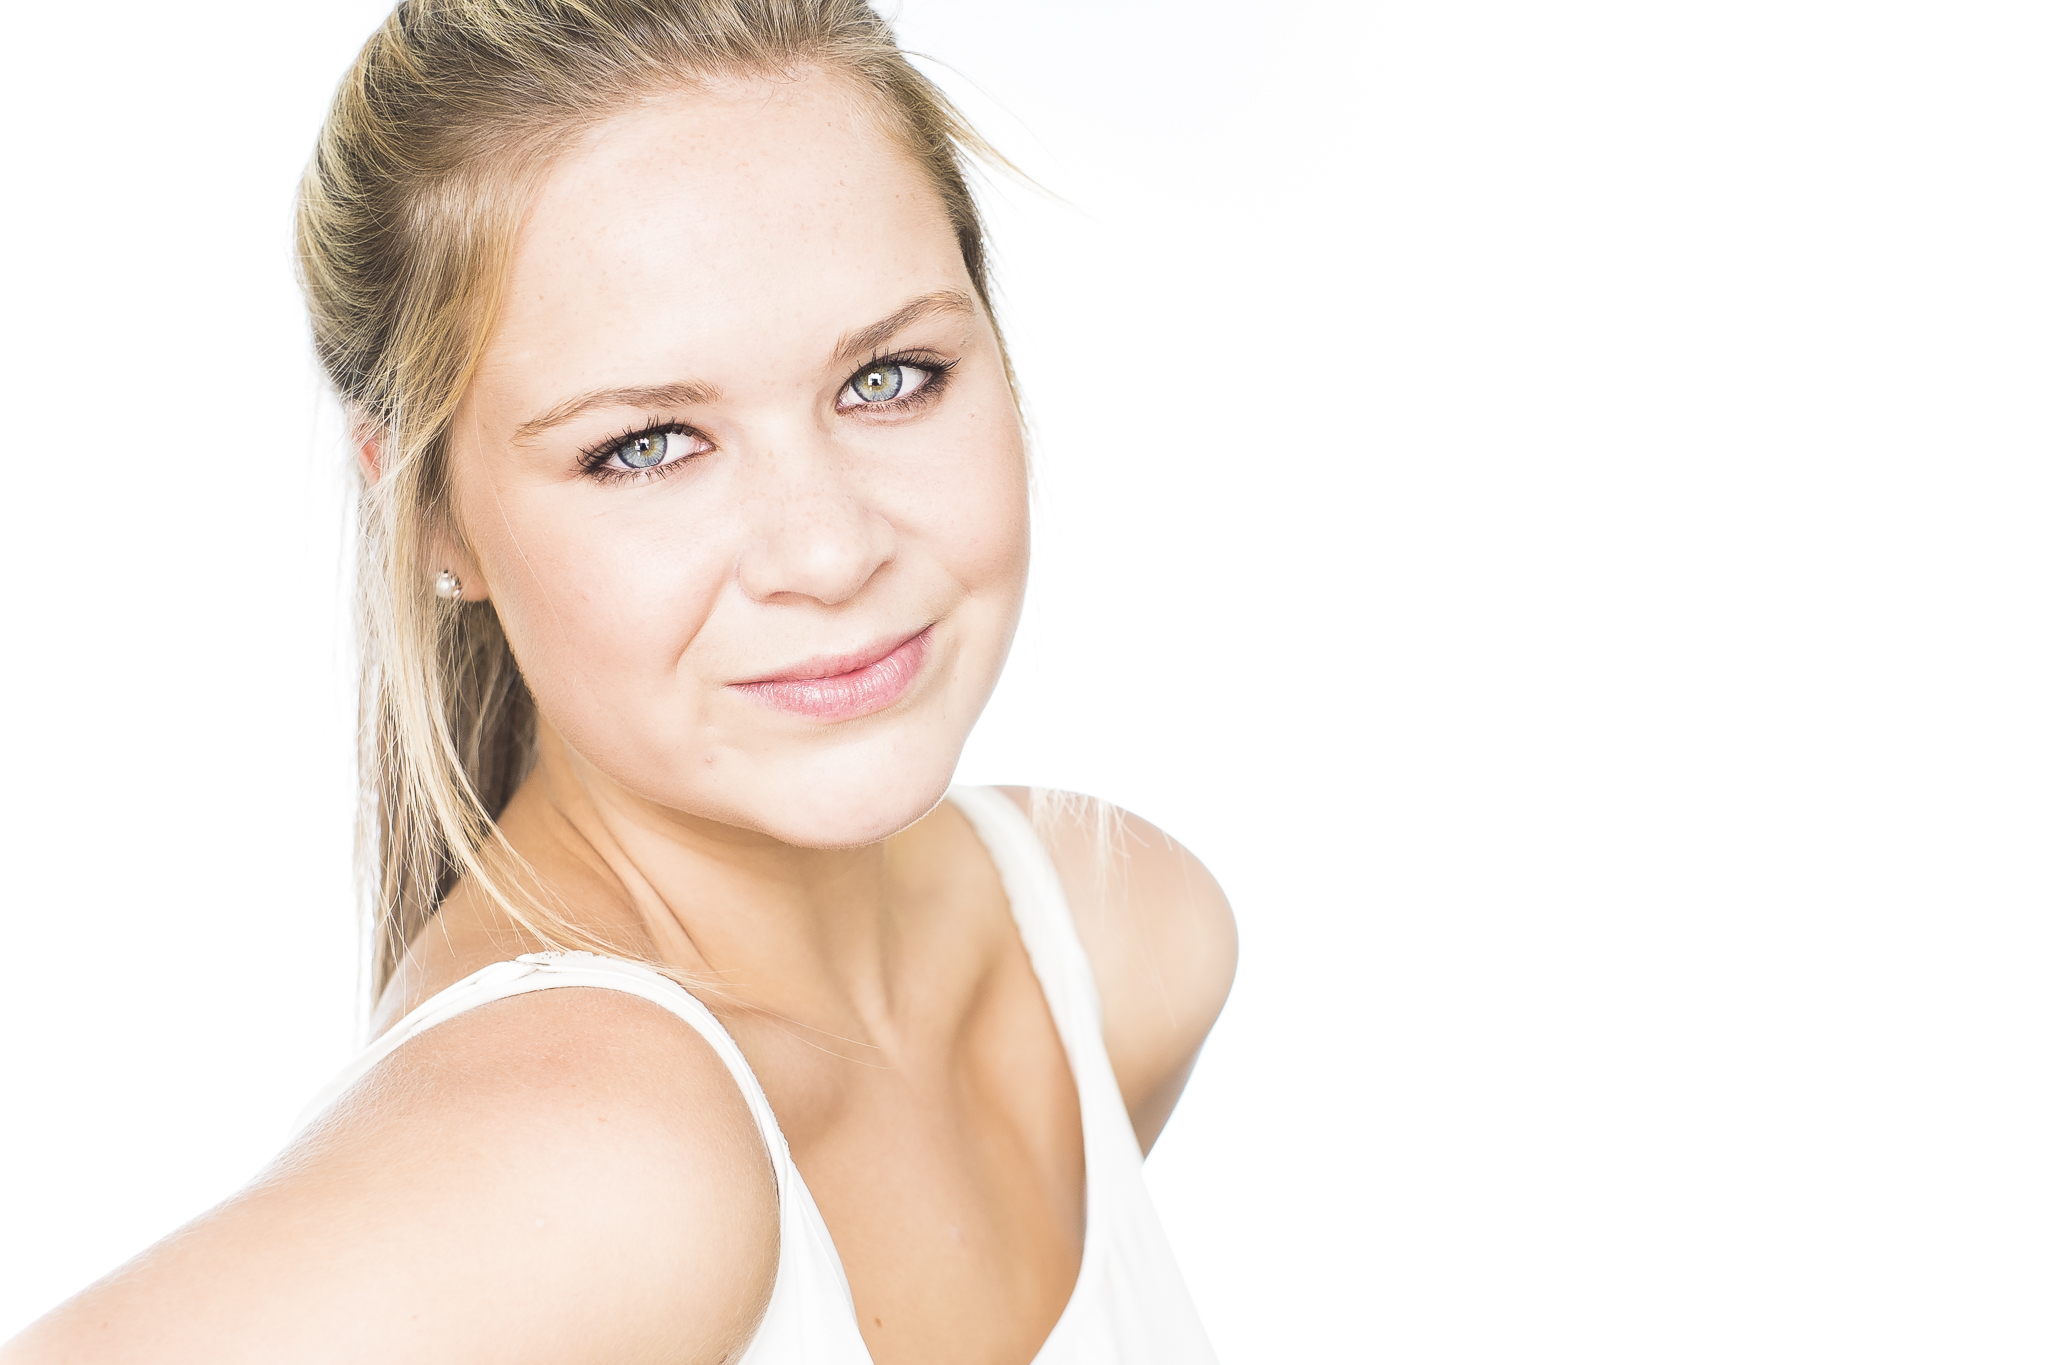 A Headshot for Sophie by professional headshot and portrait photographer Andre goosen for Boem Headshots in Adelaide.